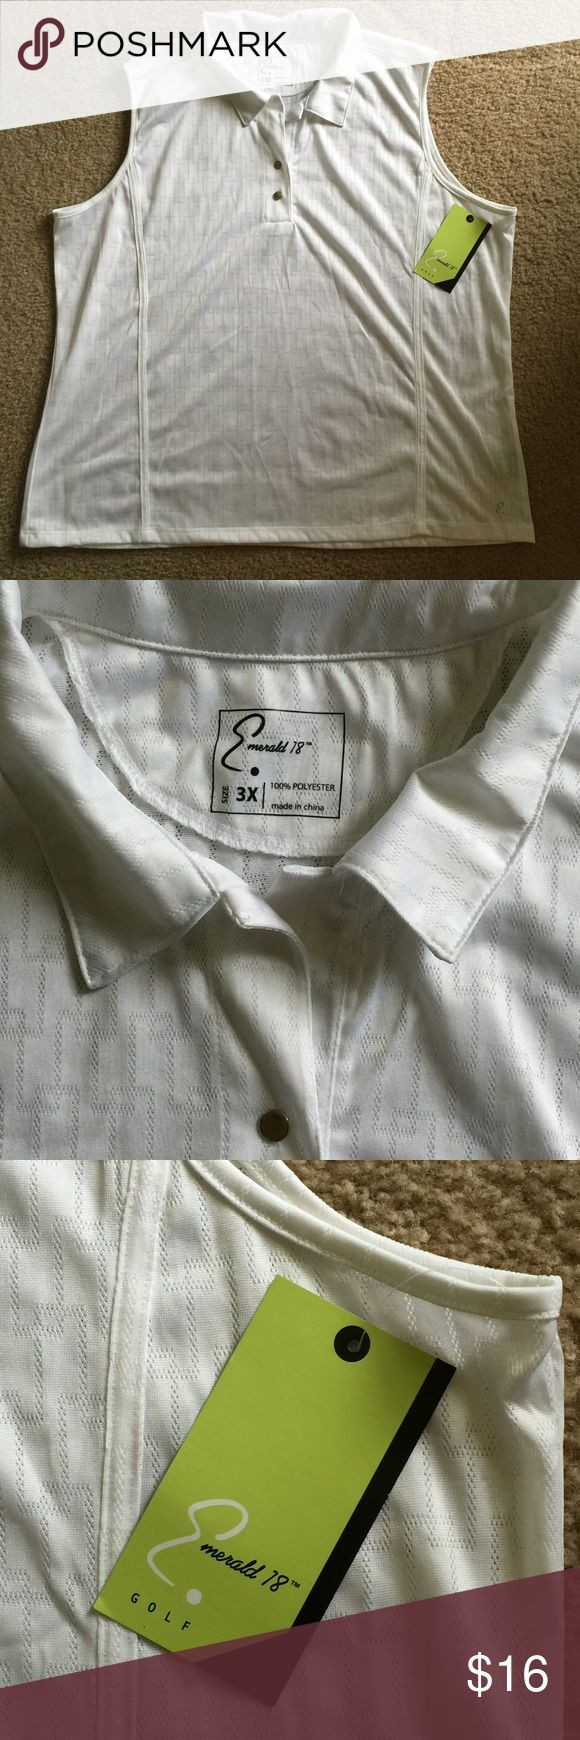 "NWT GOLF ATHLETIC SHIRT PLUS SIZE 3X, BRAND NEW This shirt is brand-new and in perfect condition with tags attached. It is 100% white polyester with stretch. Plus size 3X.  Measurements are; 25"" pit to pit and 28"" back neck to bottom. No additional discount unless bundling. Emerald 18 Tops"